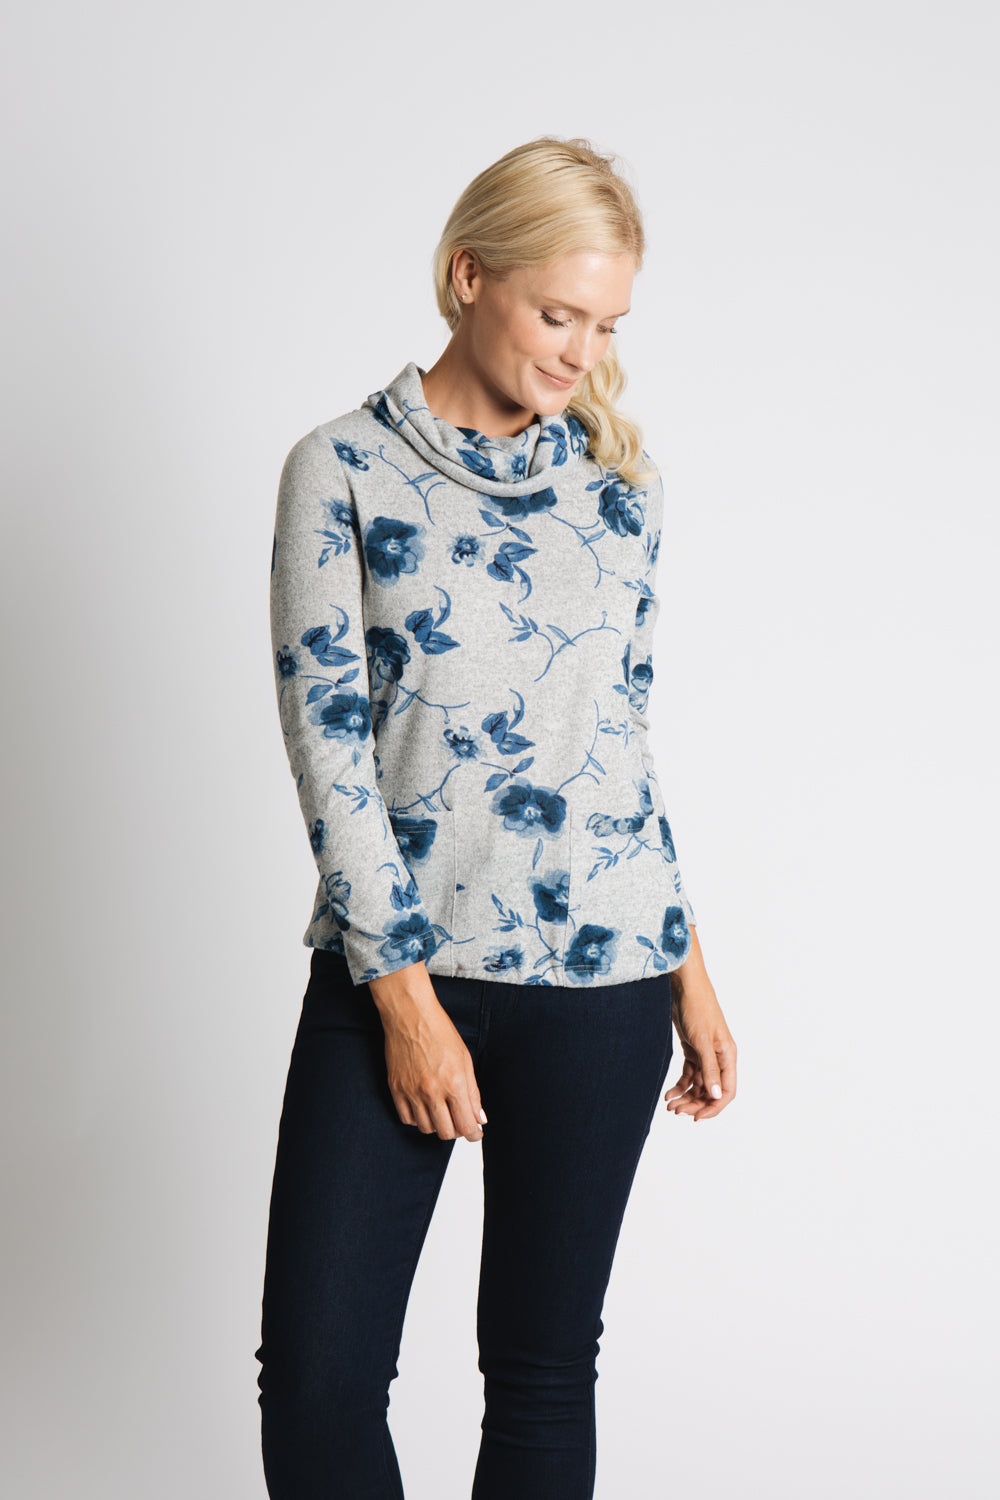 PRINTED JERSEY COWL NECK CASUAL TOP WITH PATCH POCKETS AND DRAWSTRING HEM